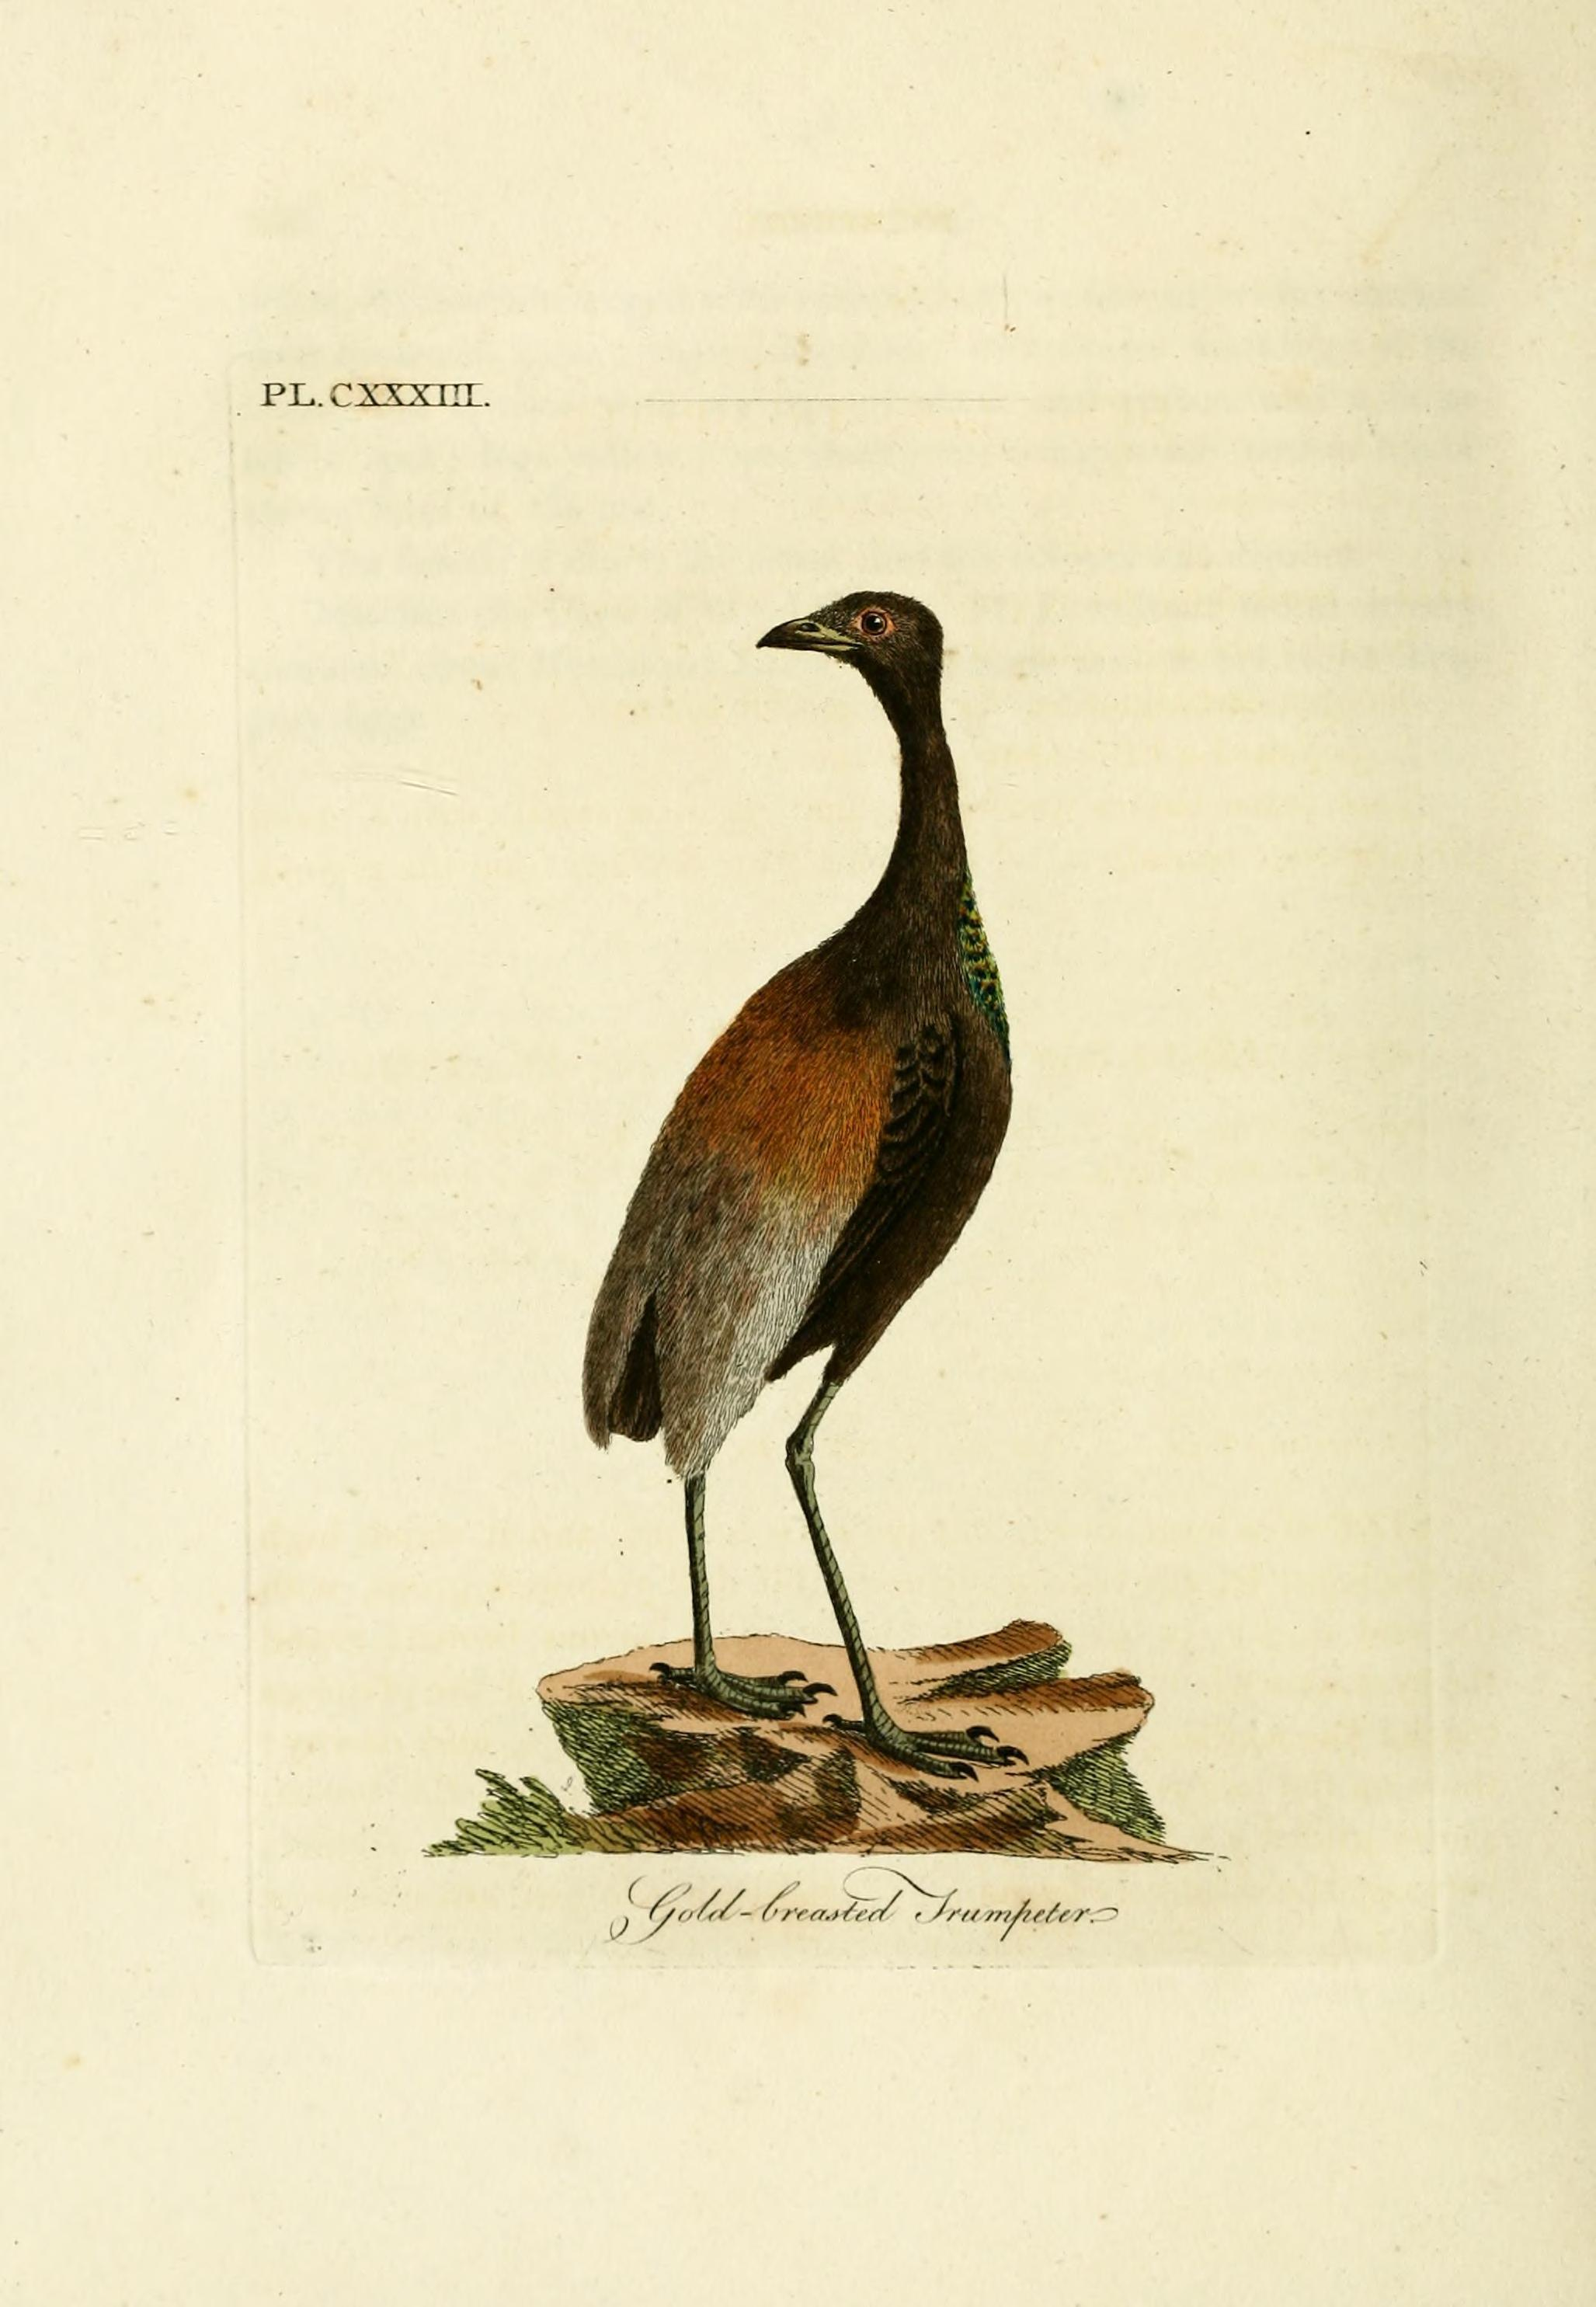 Image of trumpeters